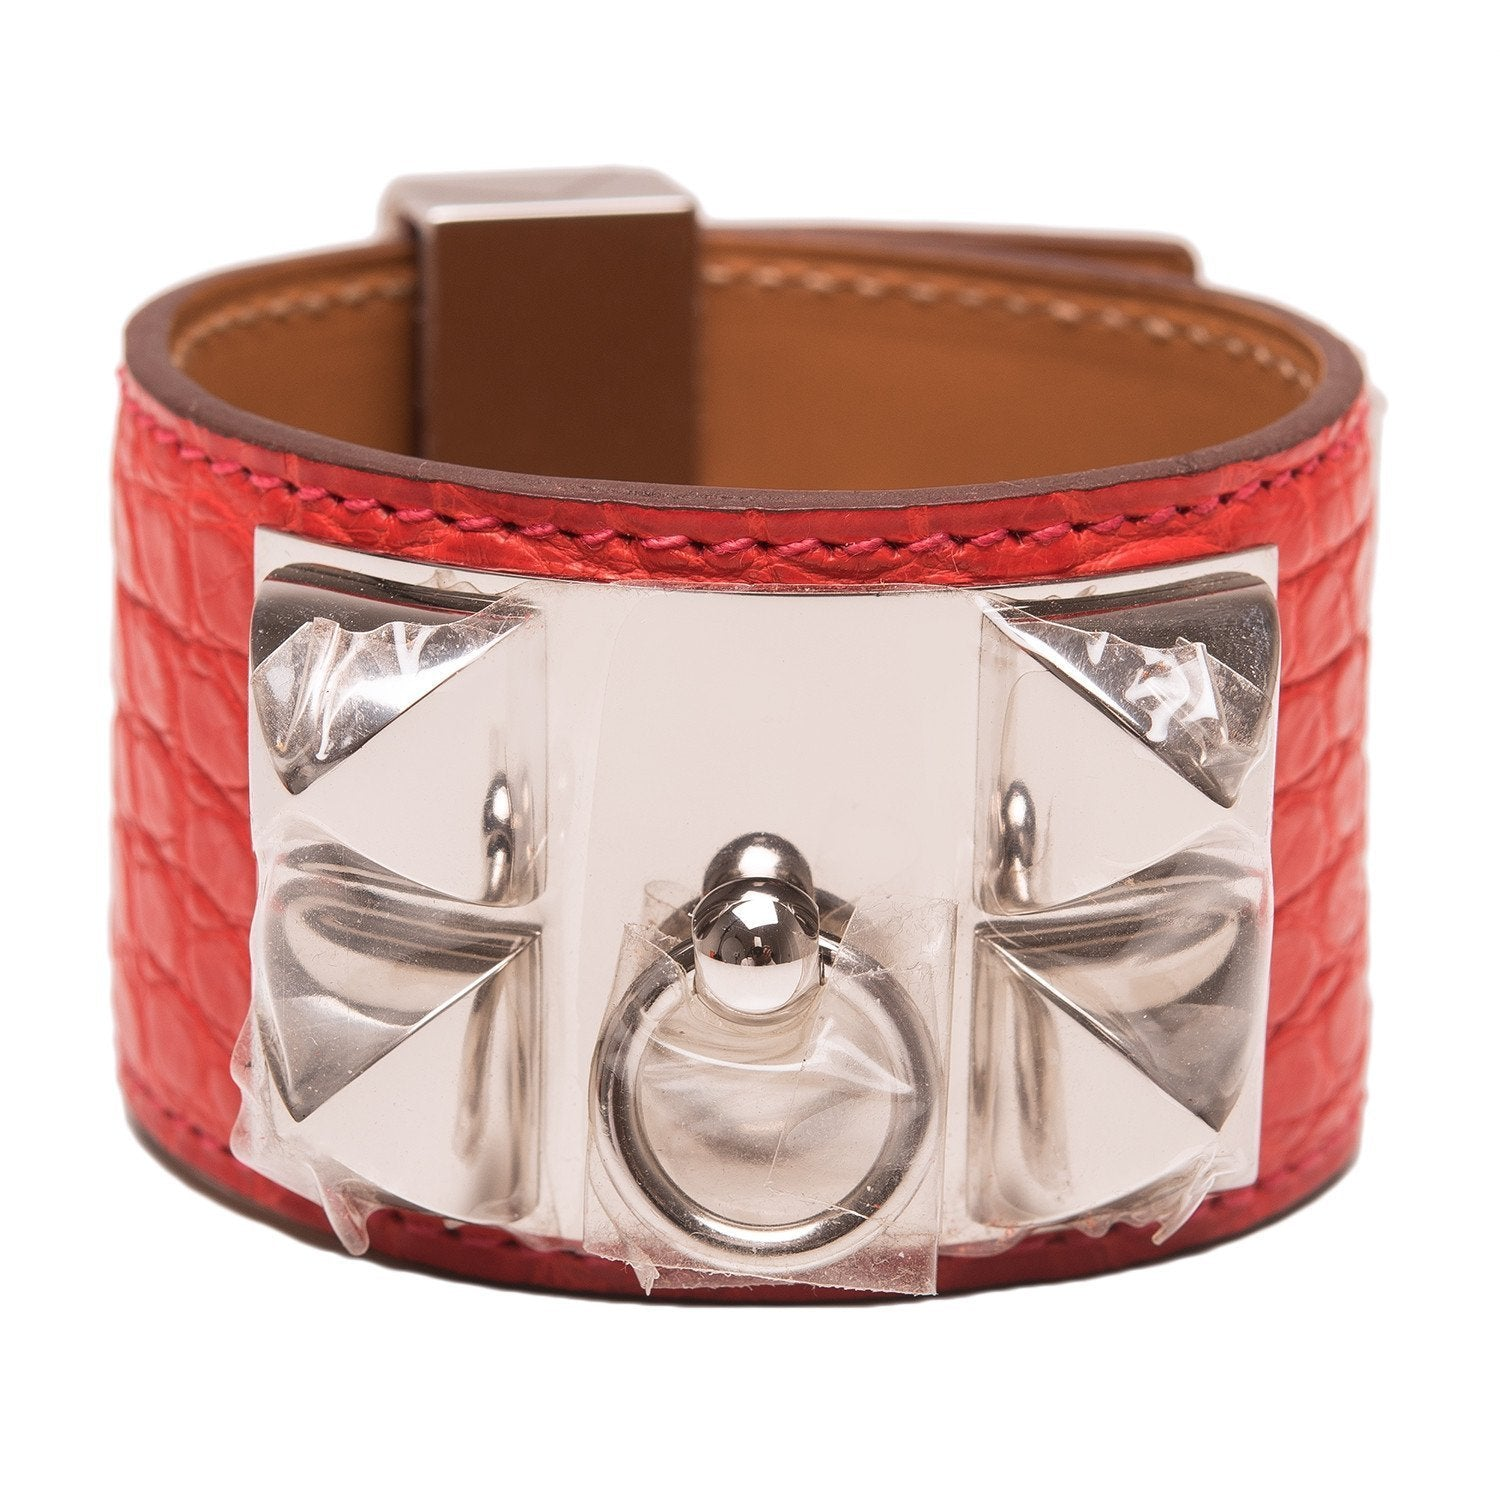 Hermes Geranium Alligator Collier De Chien Cdc Bracelet Small Accessories